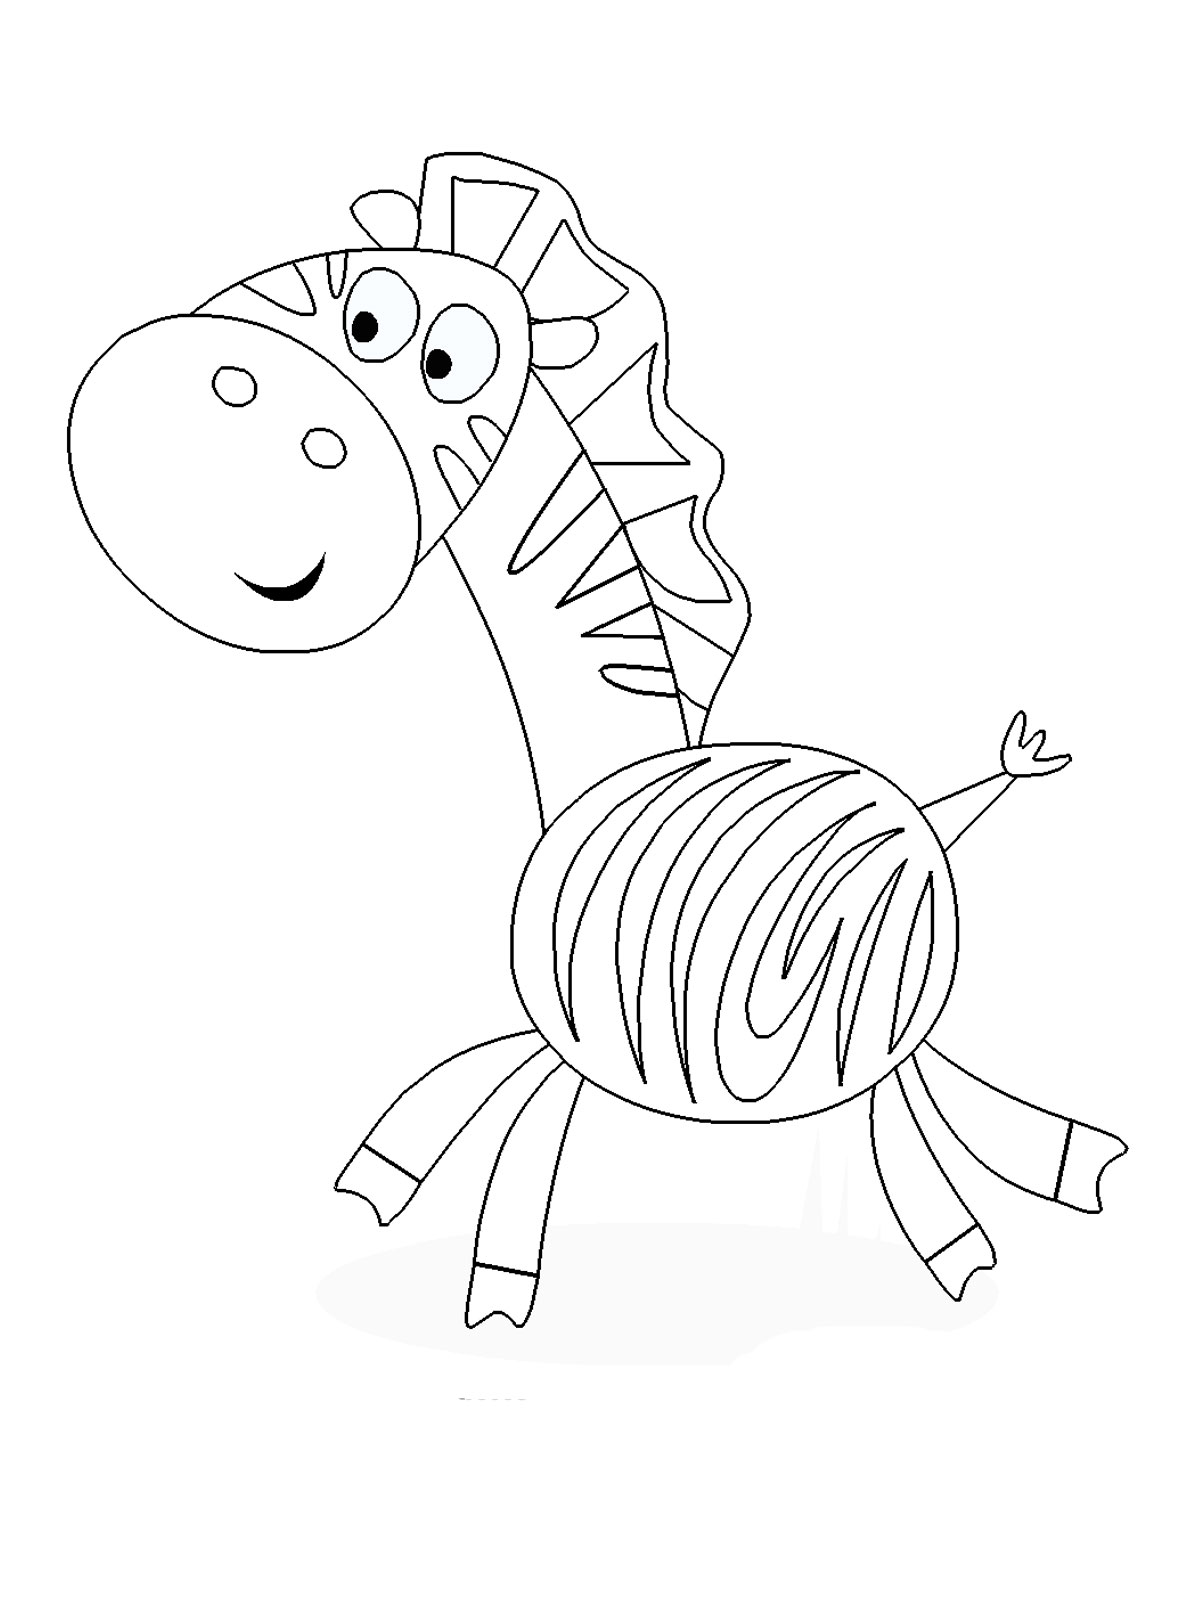 coloring pages for print printable coloring pages for kids coloring pages for kids print pages coloring for